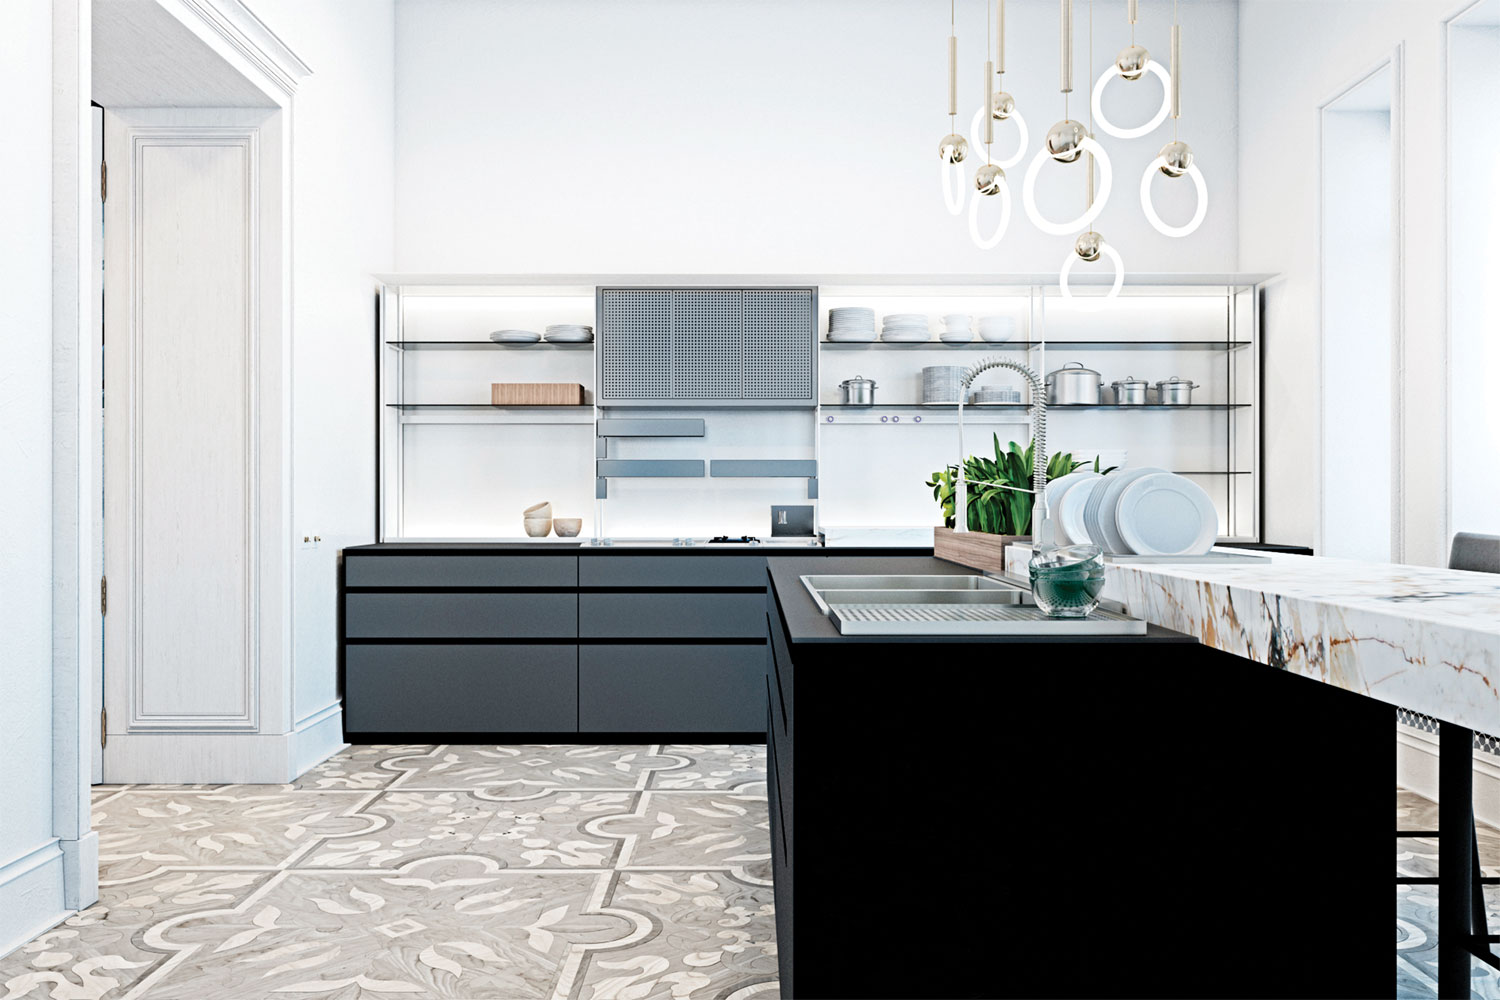 9 quality kitchen designs: 7. Italian luxe